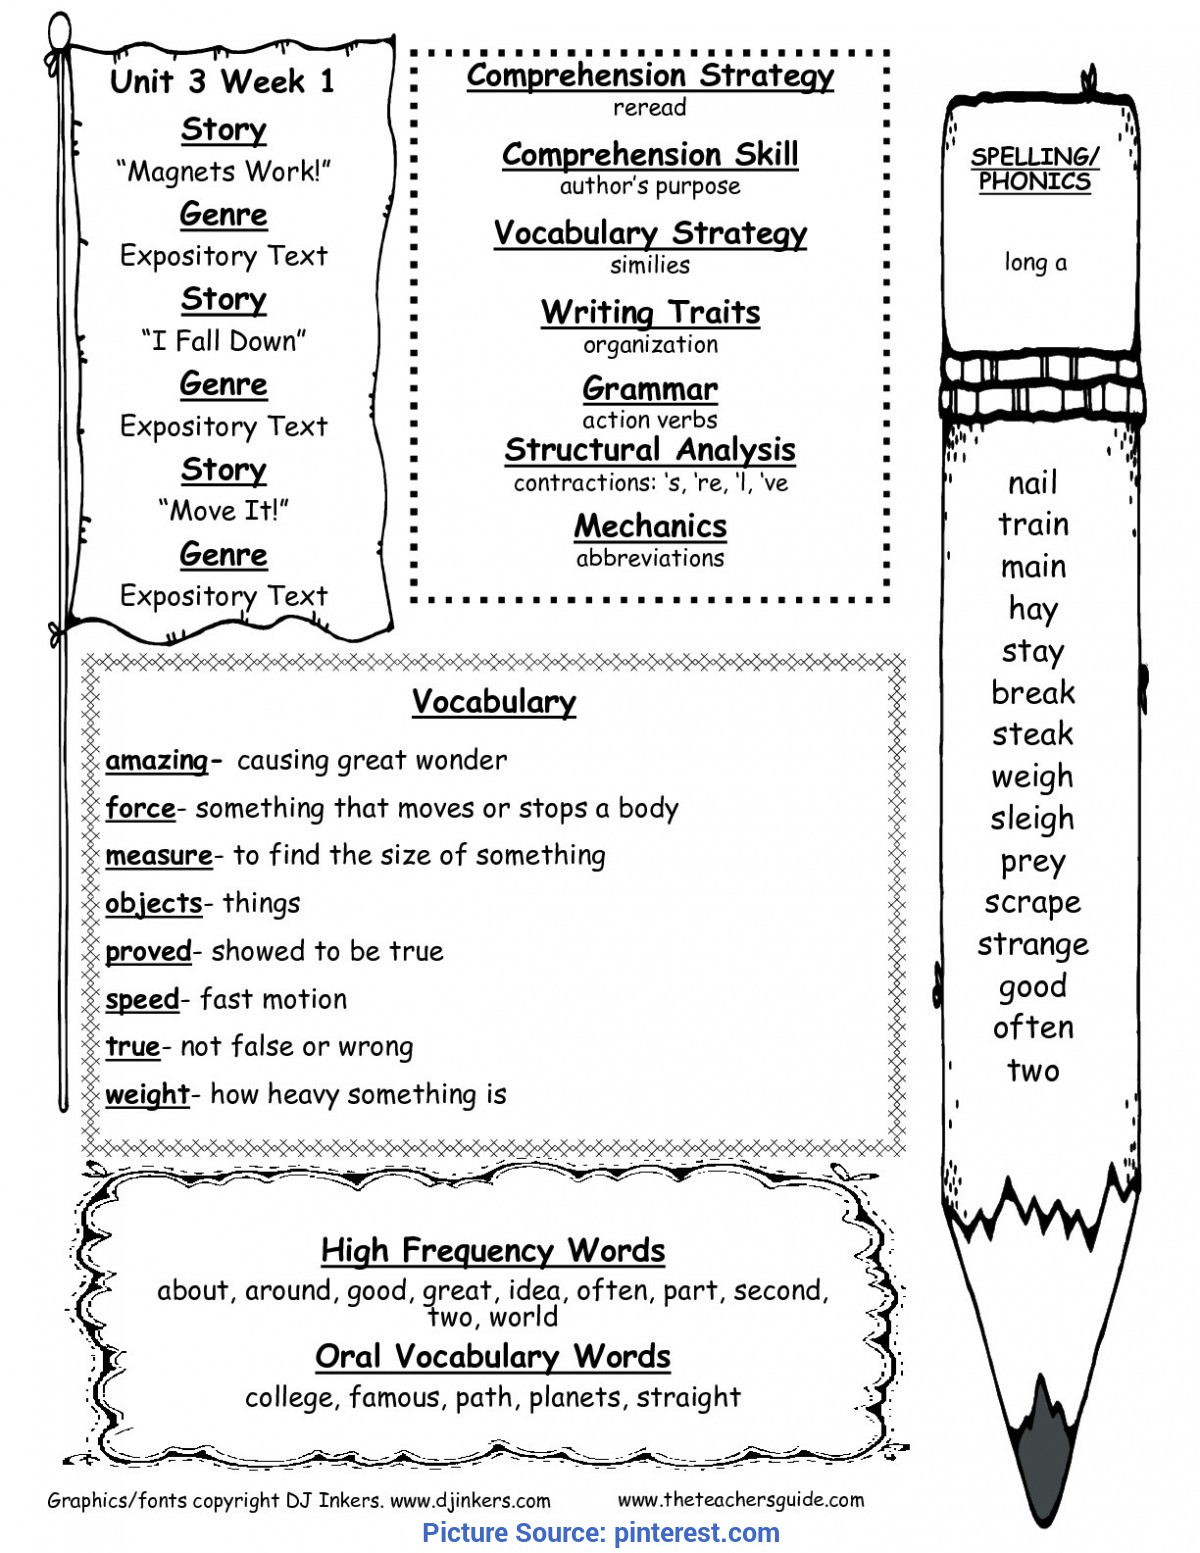 Excellent Shared Reading Lesson Plan 2Nd Grade The Teacher'S Guide-Free Worksheets, Smartboard Templates, An